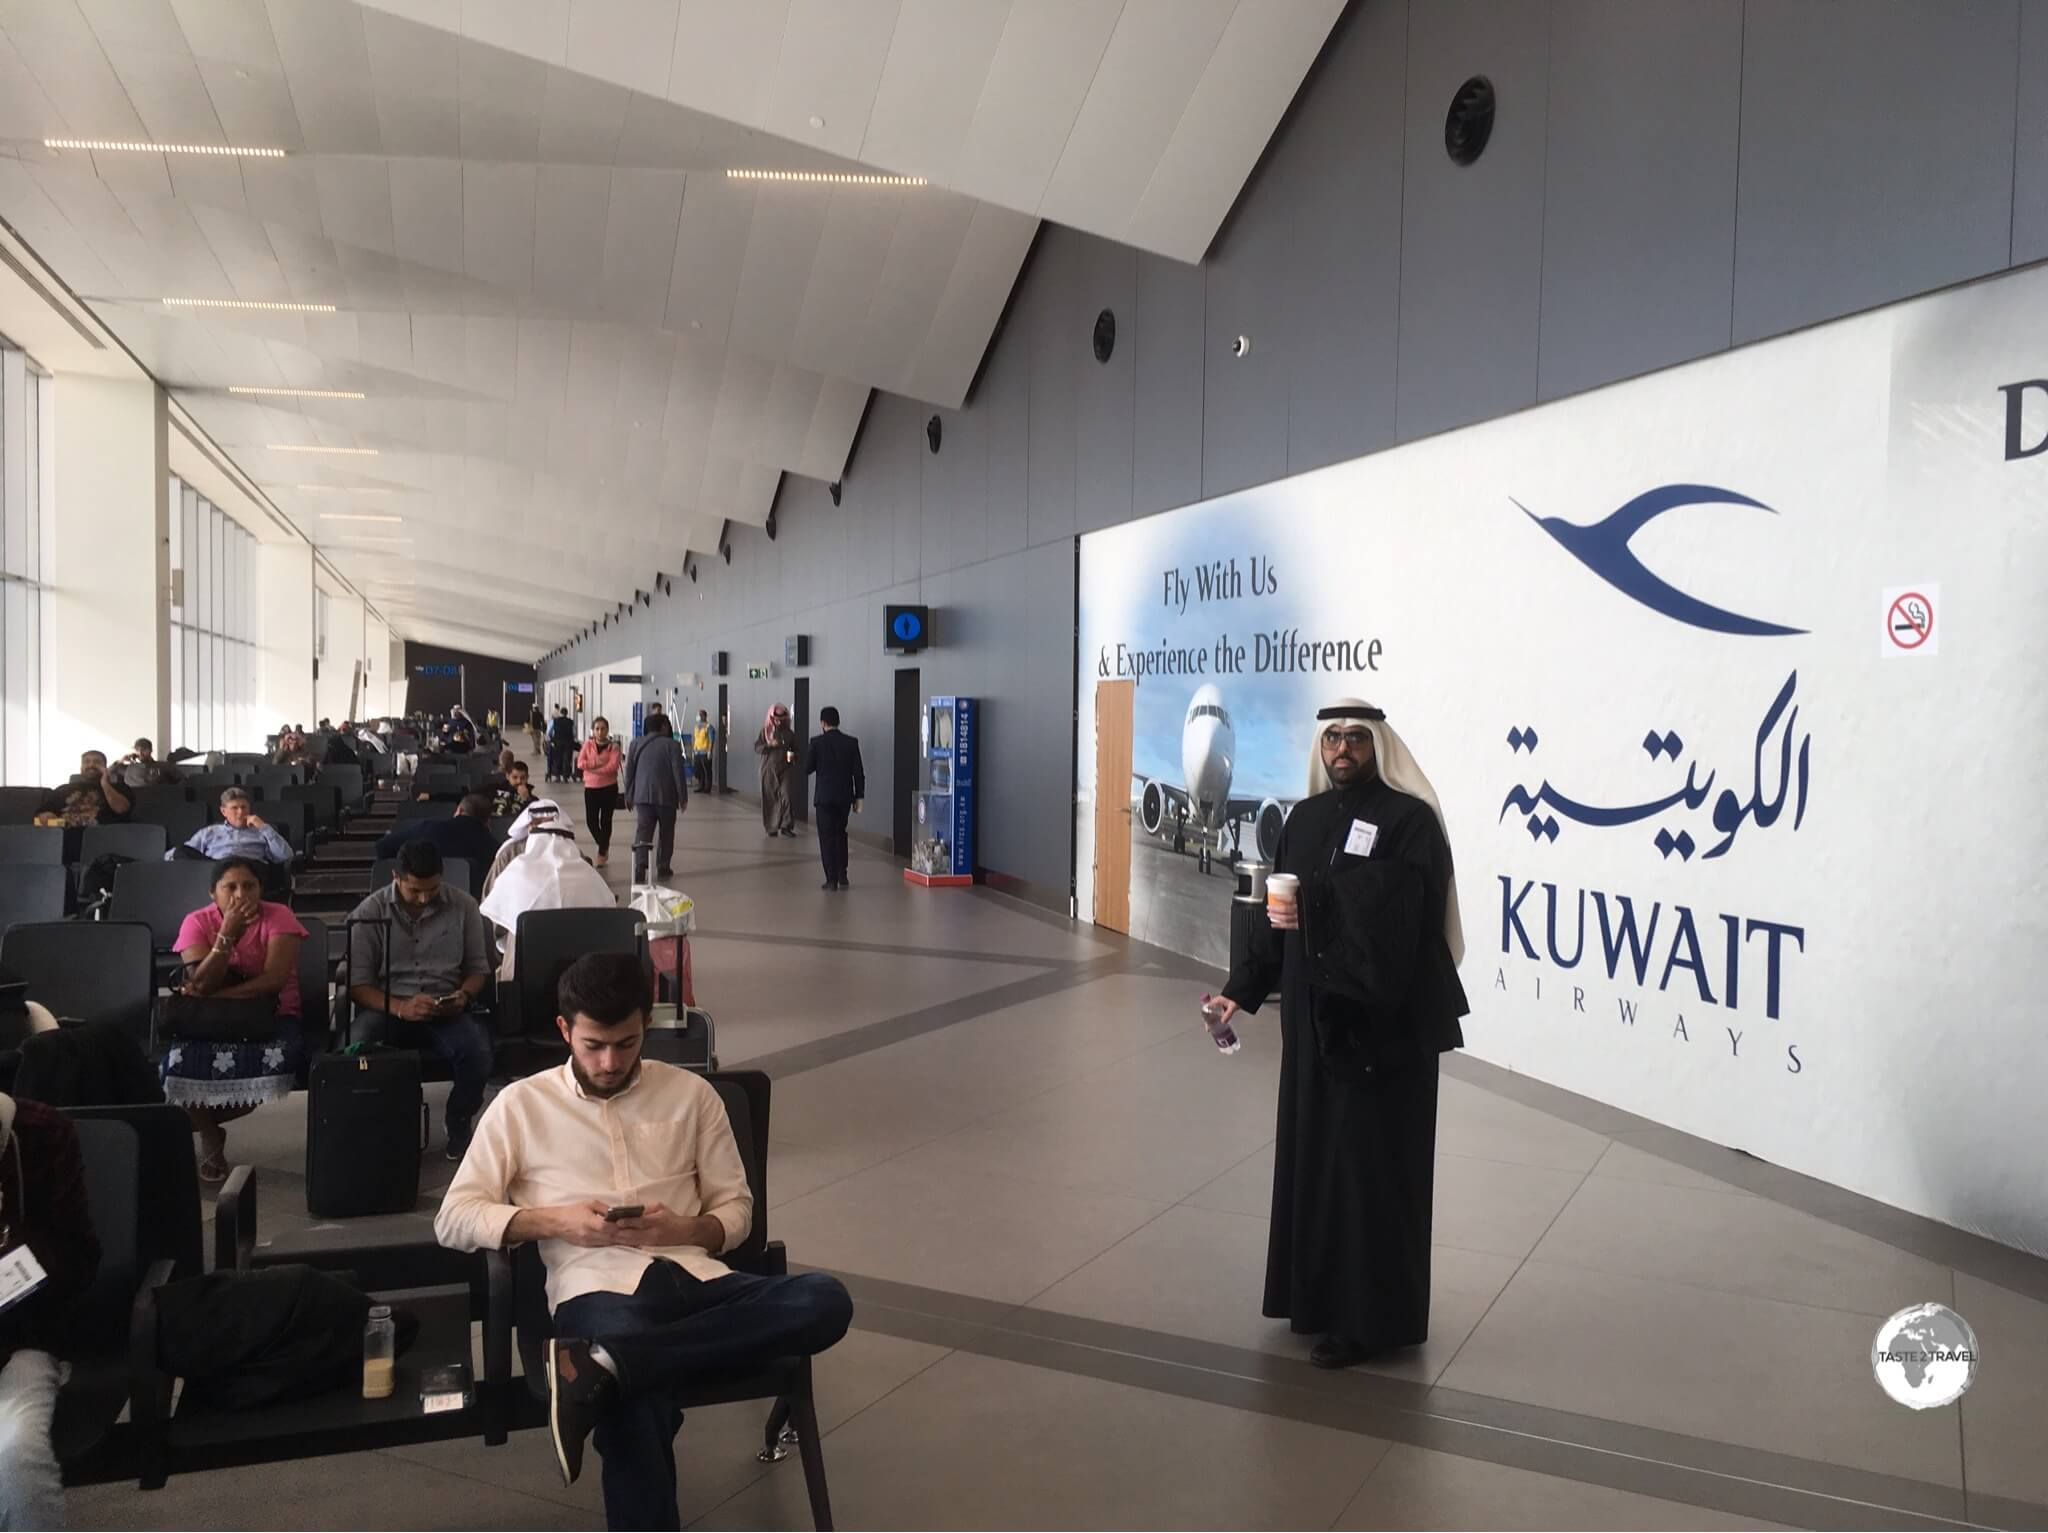 Inaugurated on the 8th of August 2018, Terminal 4 is used by all flights operated by Kuwait Airways.